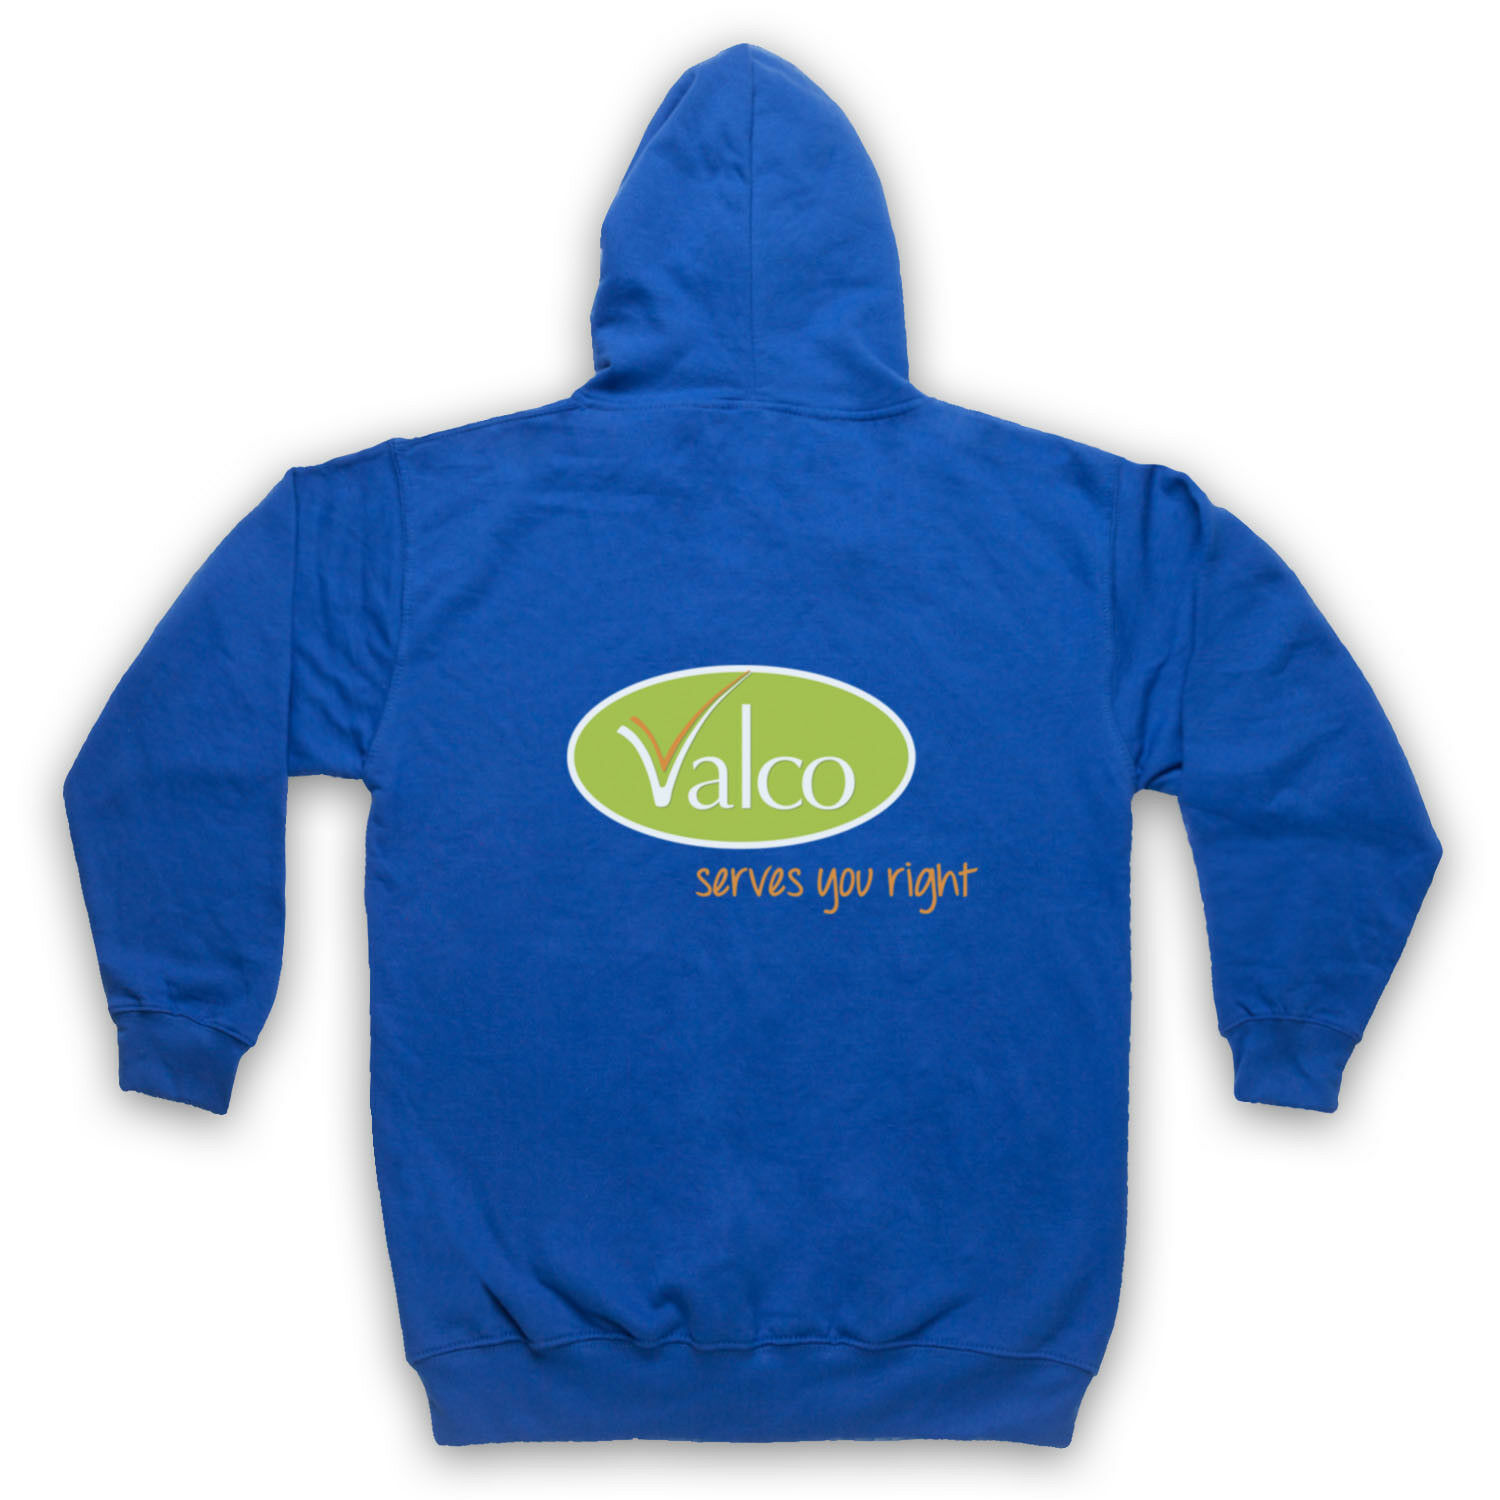 TROLLIED VALCO SERVES YOU RIGHT COMEDY COMEDY COMEDY SUPERMARKET TV ADULTS & KIDS HOODIE | Lassen Sie unsere Produkte in die Welt gehen  bf9af2